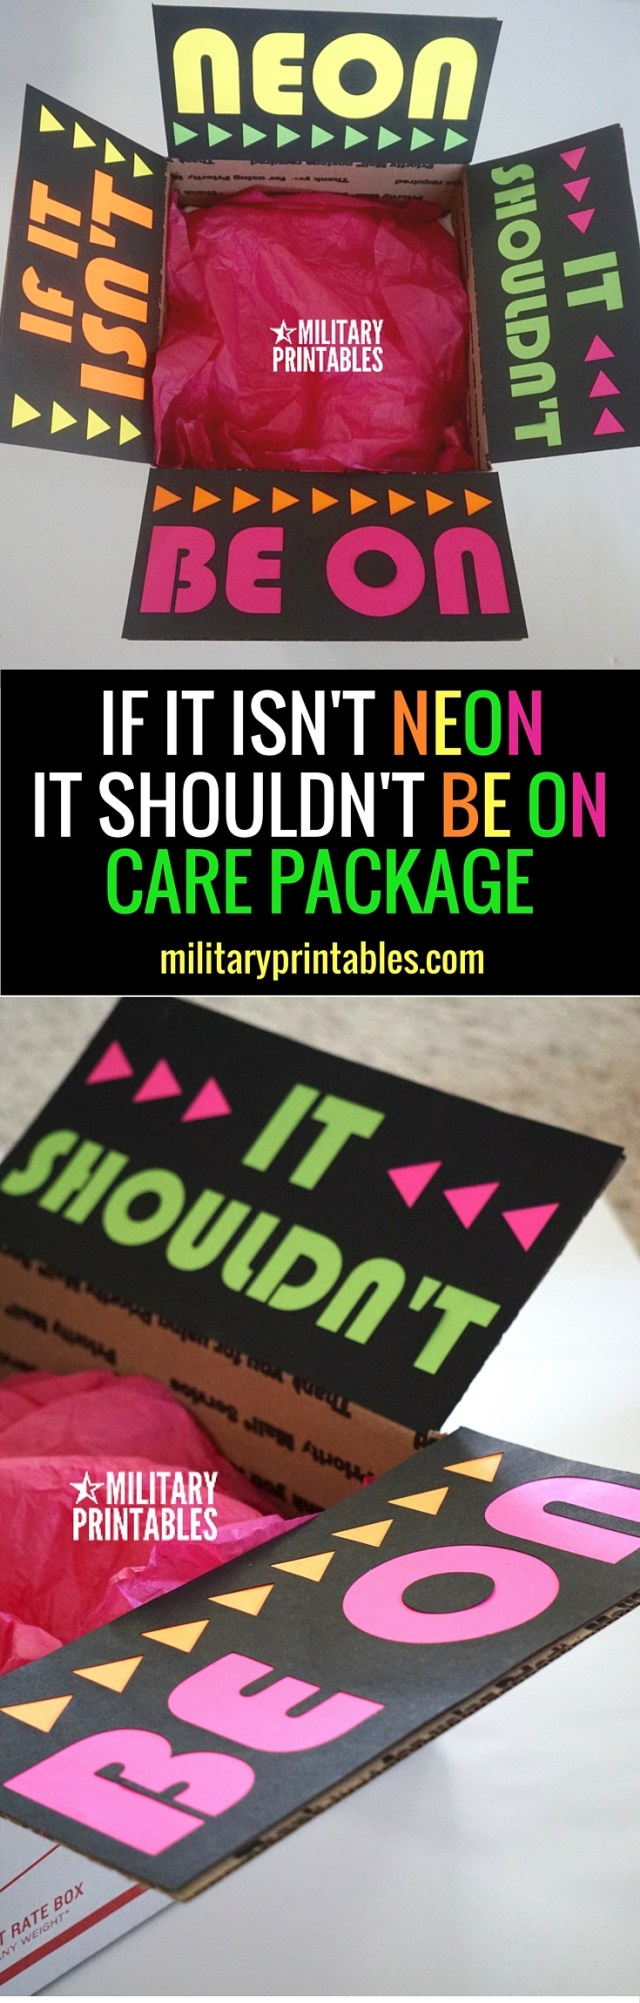 If It isn't neon, it should be on care package (1)